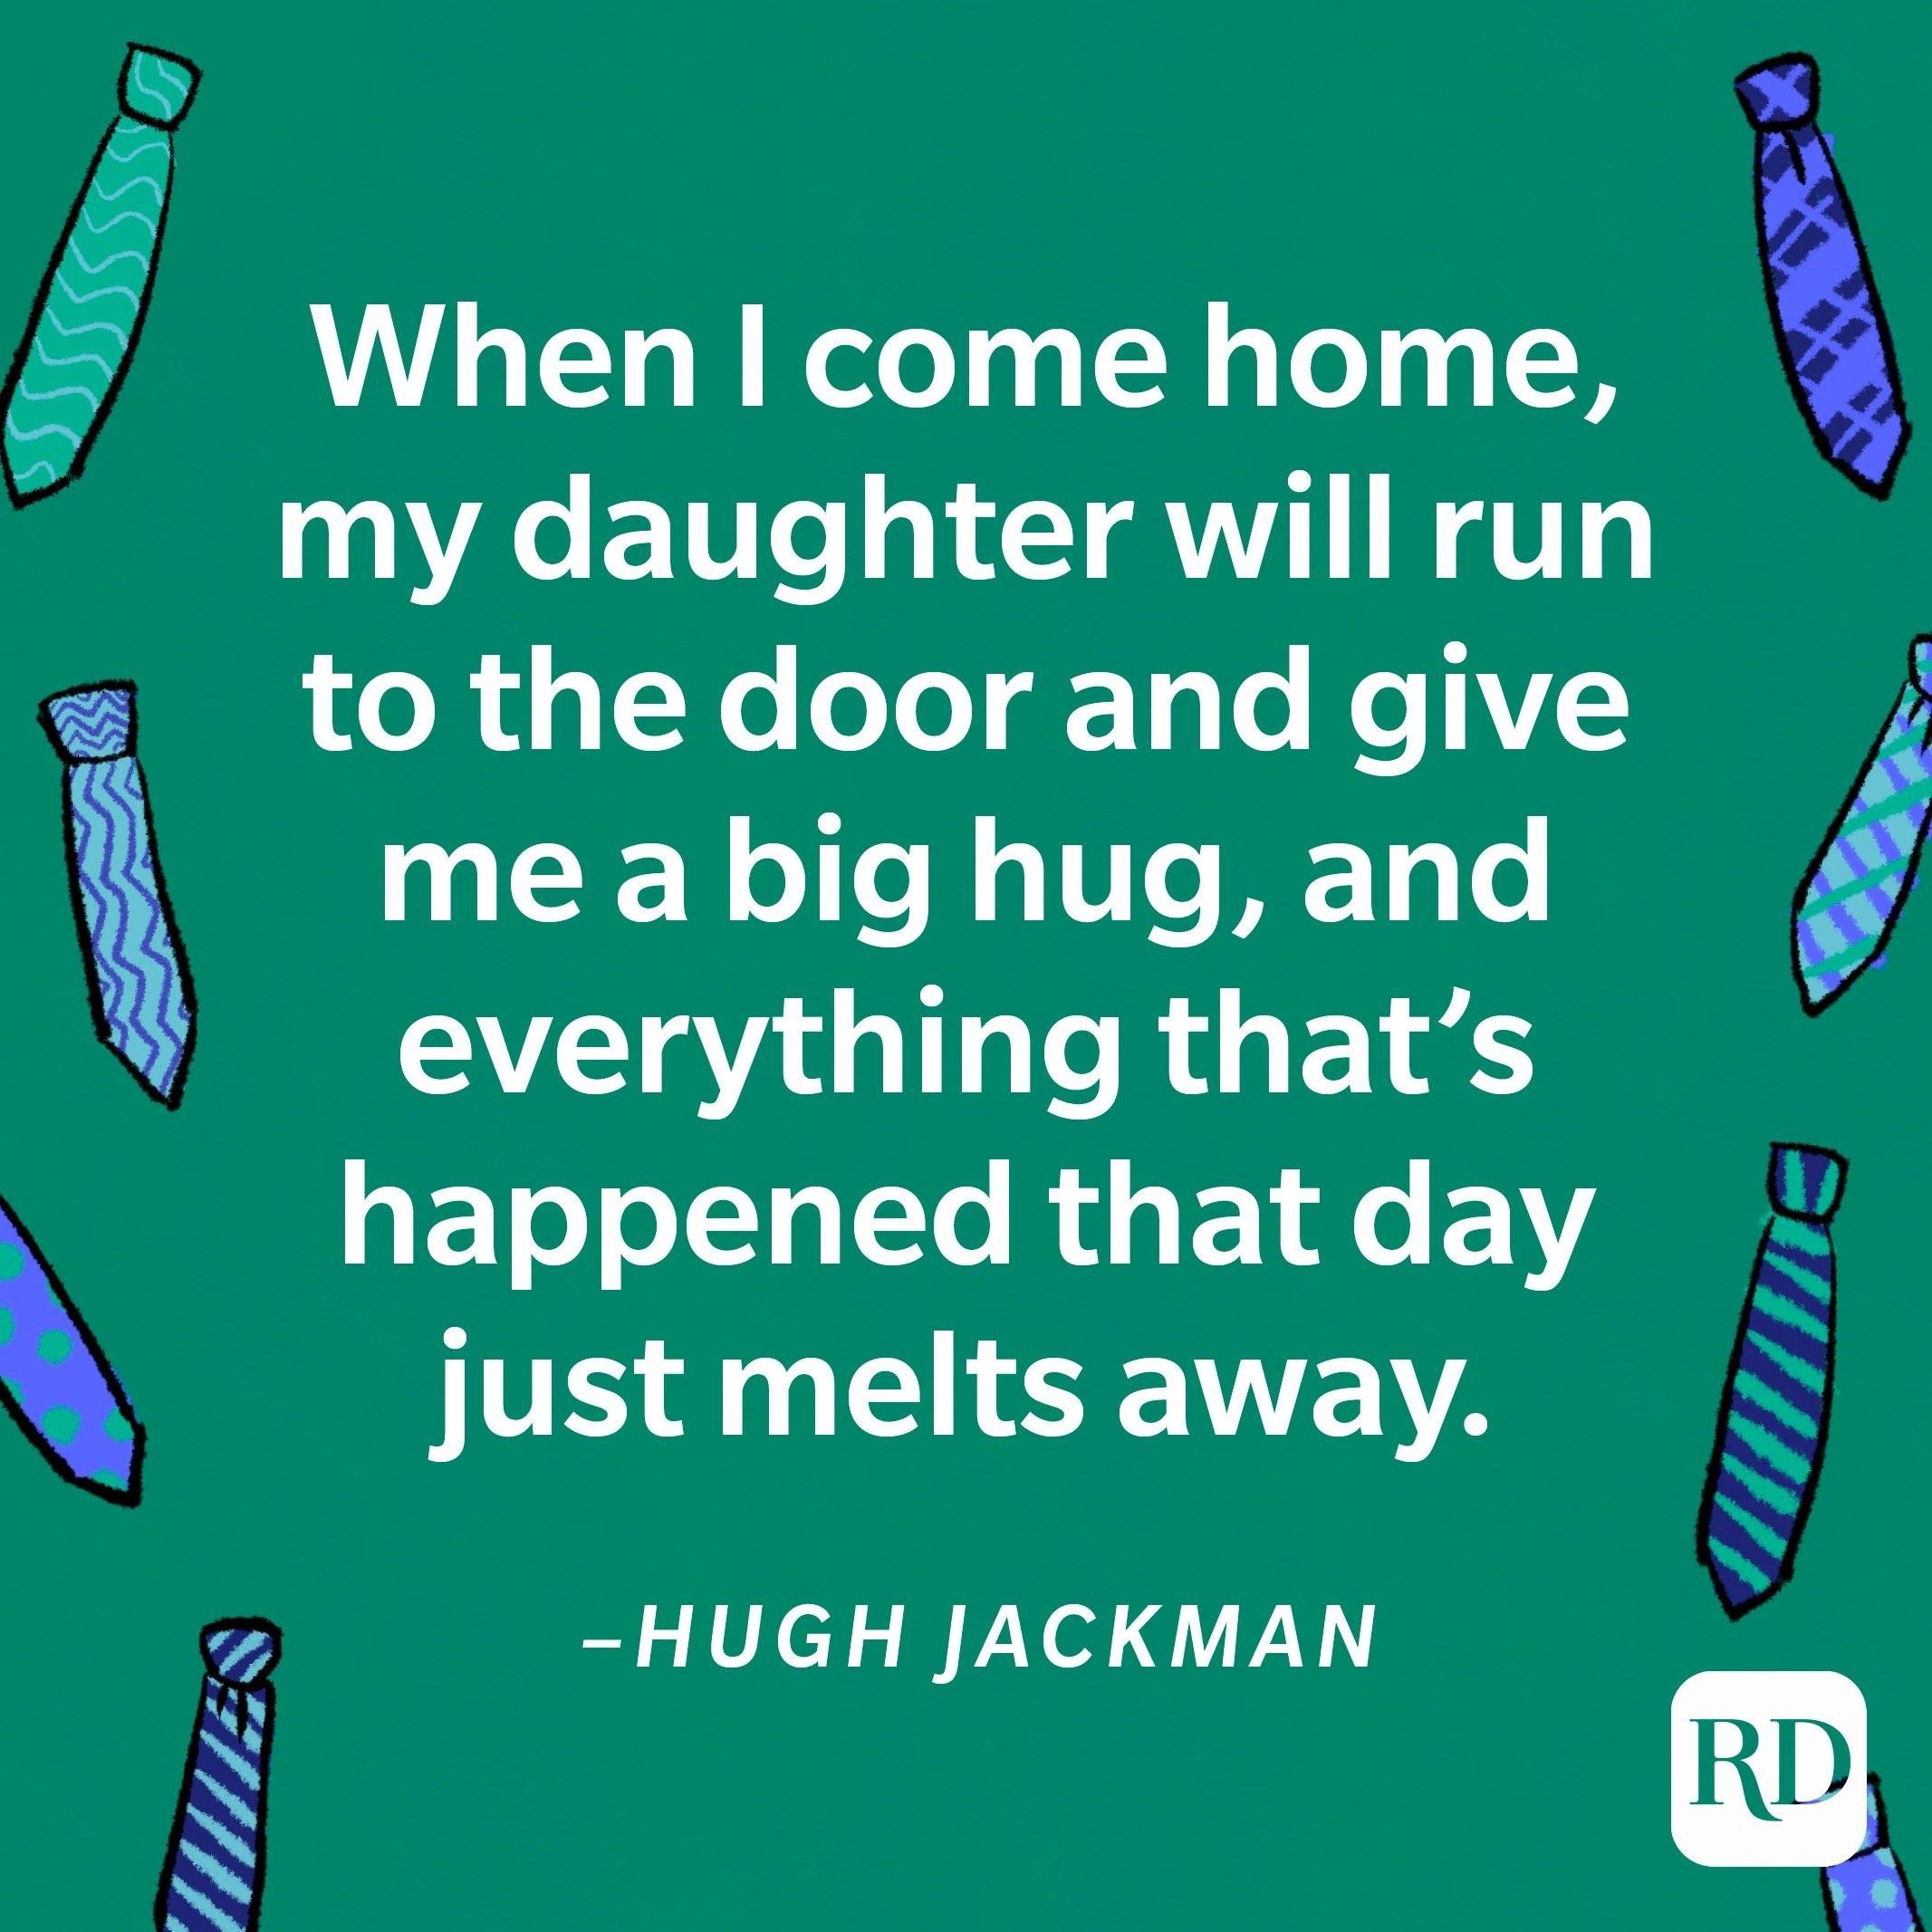 """""""When I come home, my daughter will run to the door and give me a big hug, and everything that's happened that day just melts away.""""—Hugh Jackman 18"""